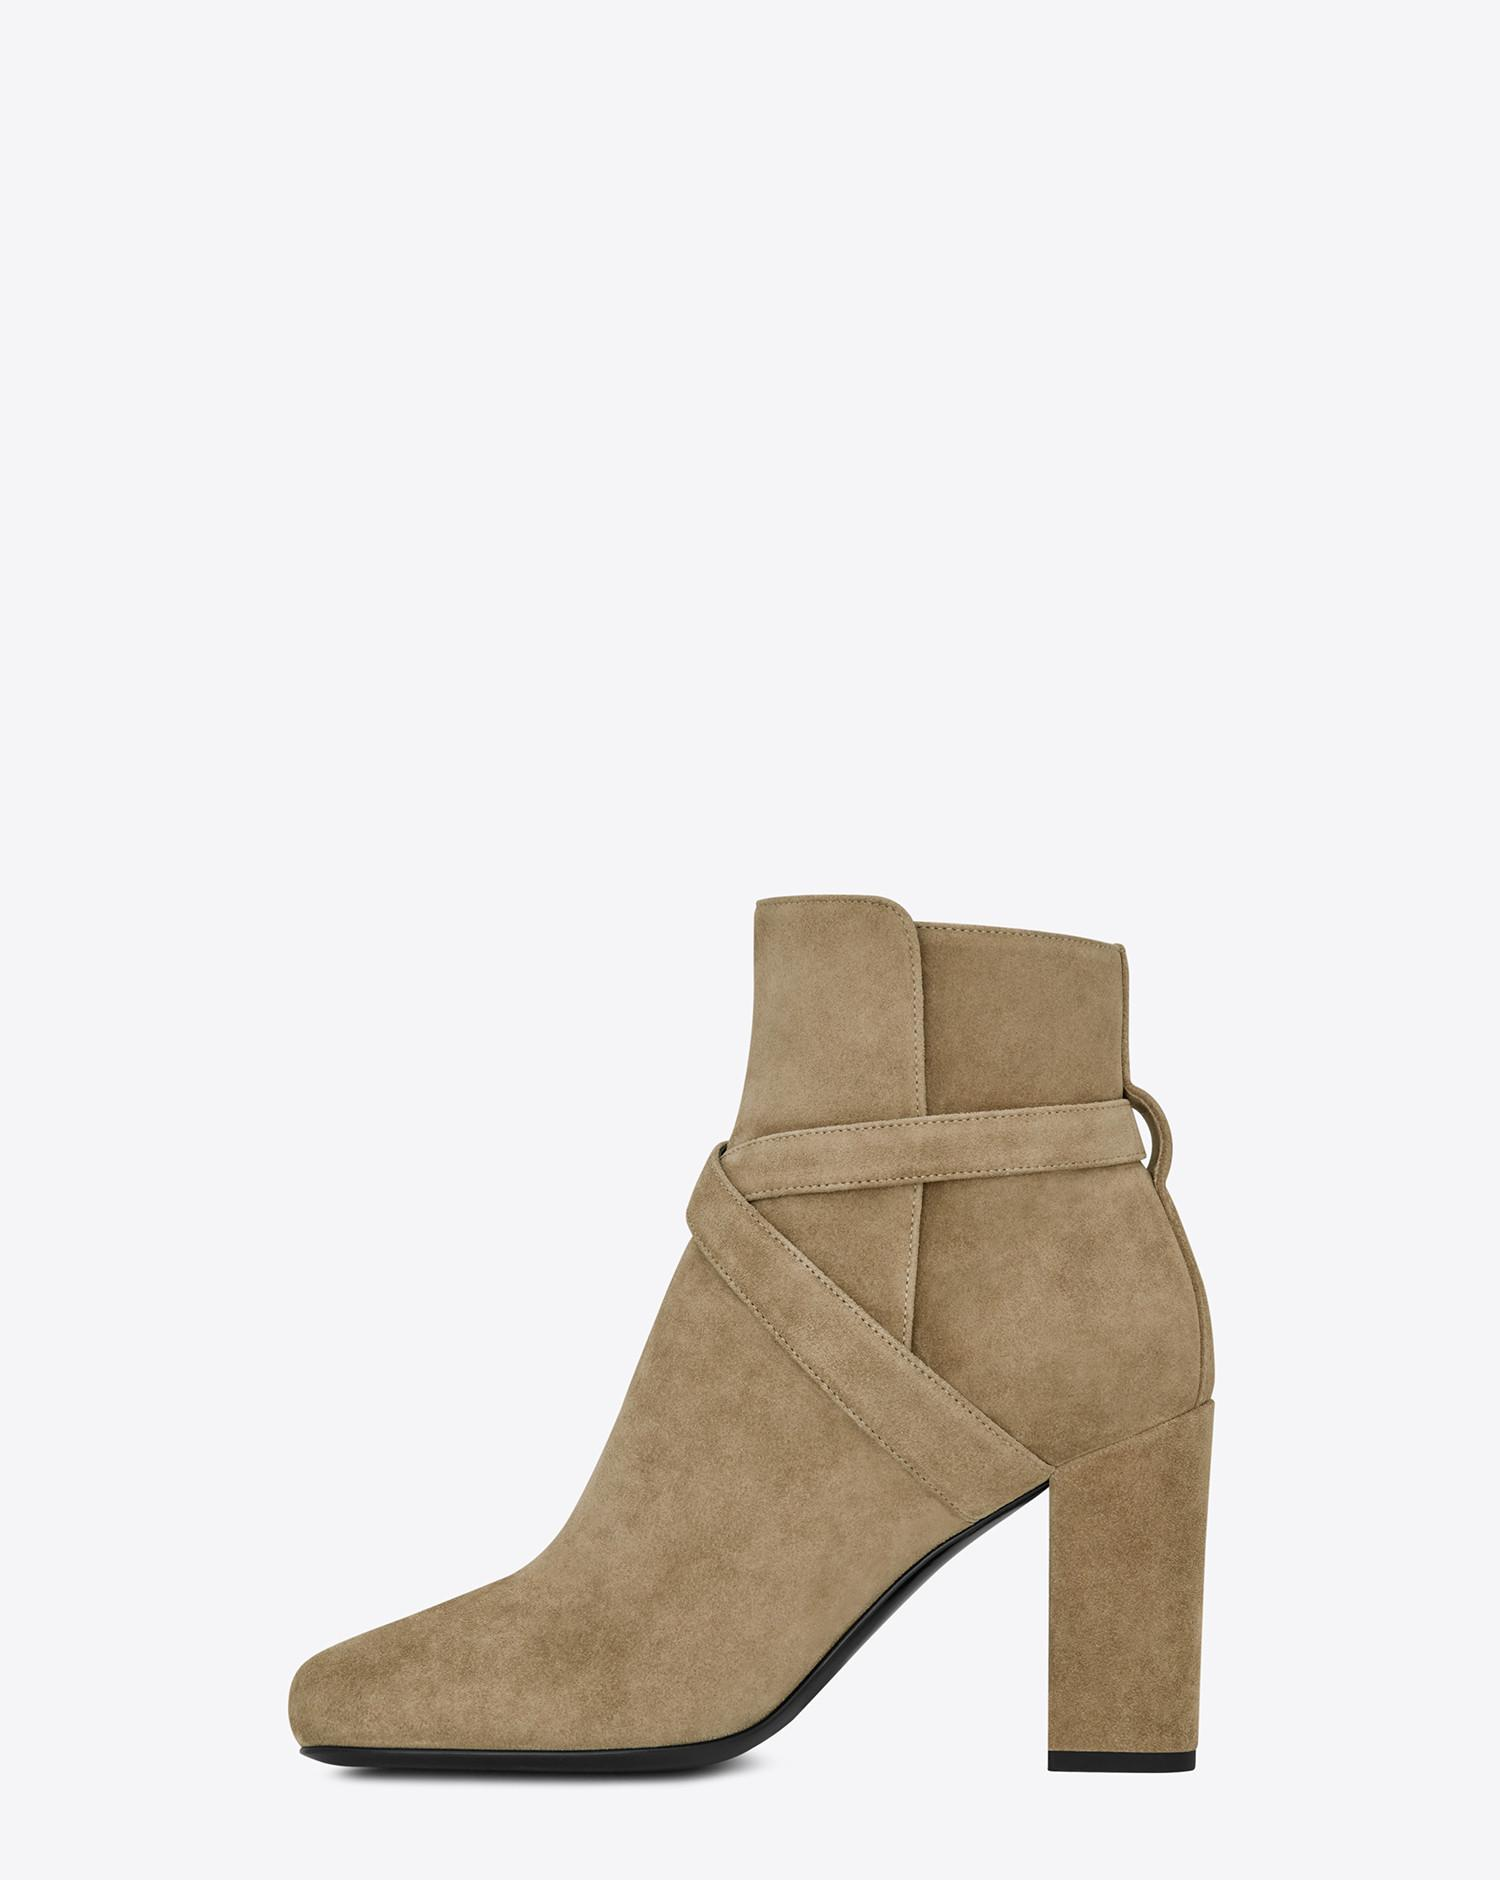 128aa06334 Saint Laurent Multicolor Babies 90 Cross Strap Ankle Boot In Light Tobacco  Suede And Antique Gold-toned Metal